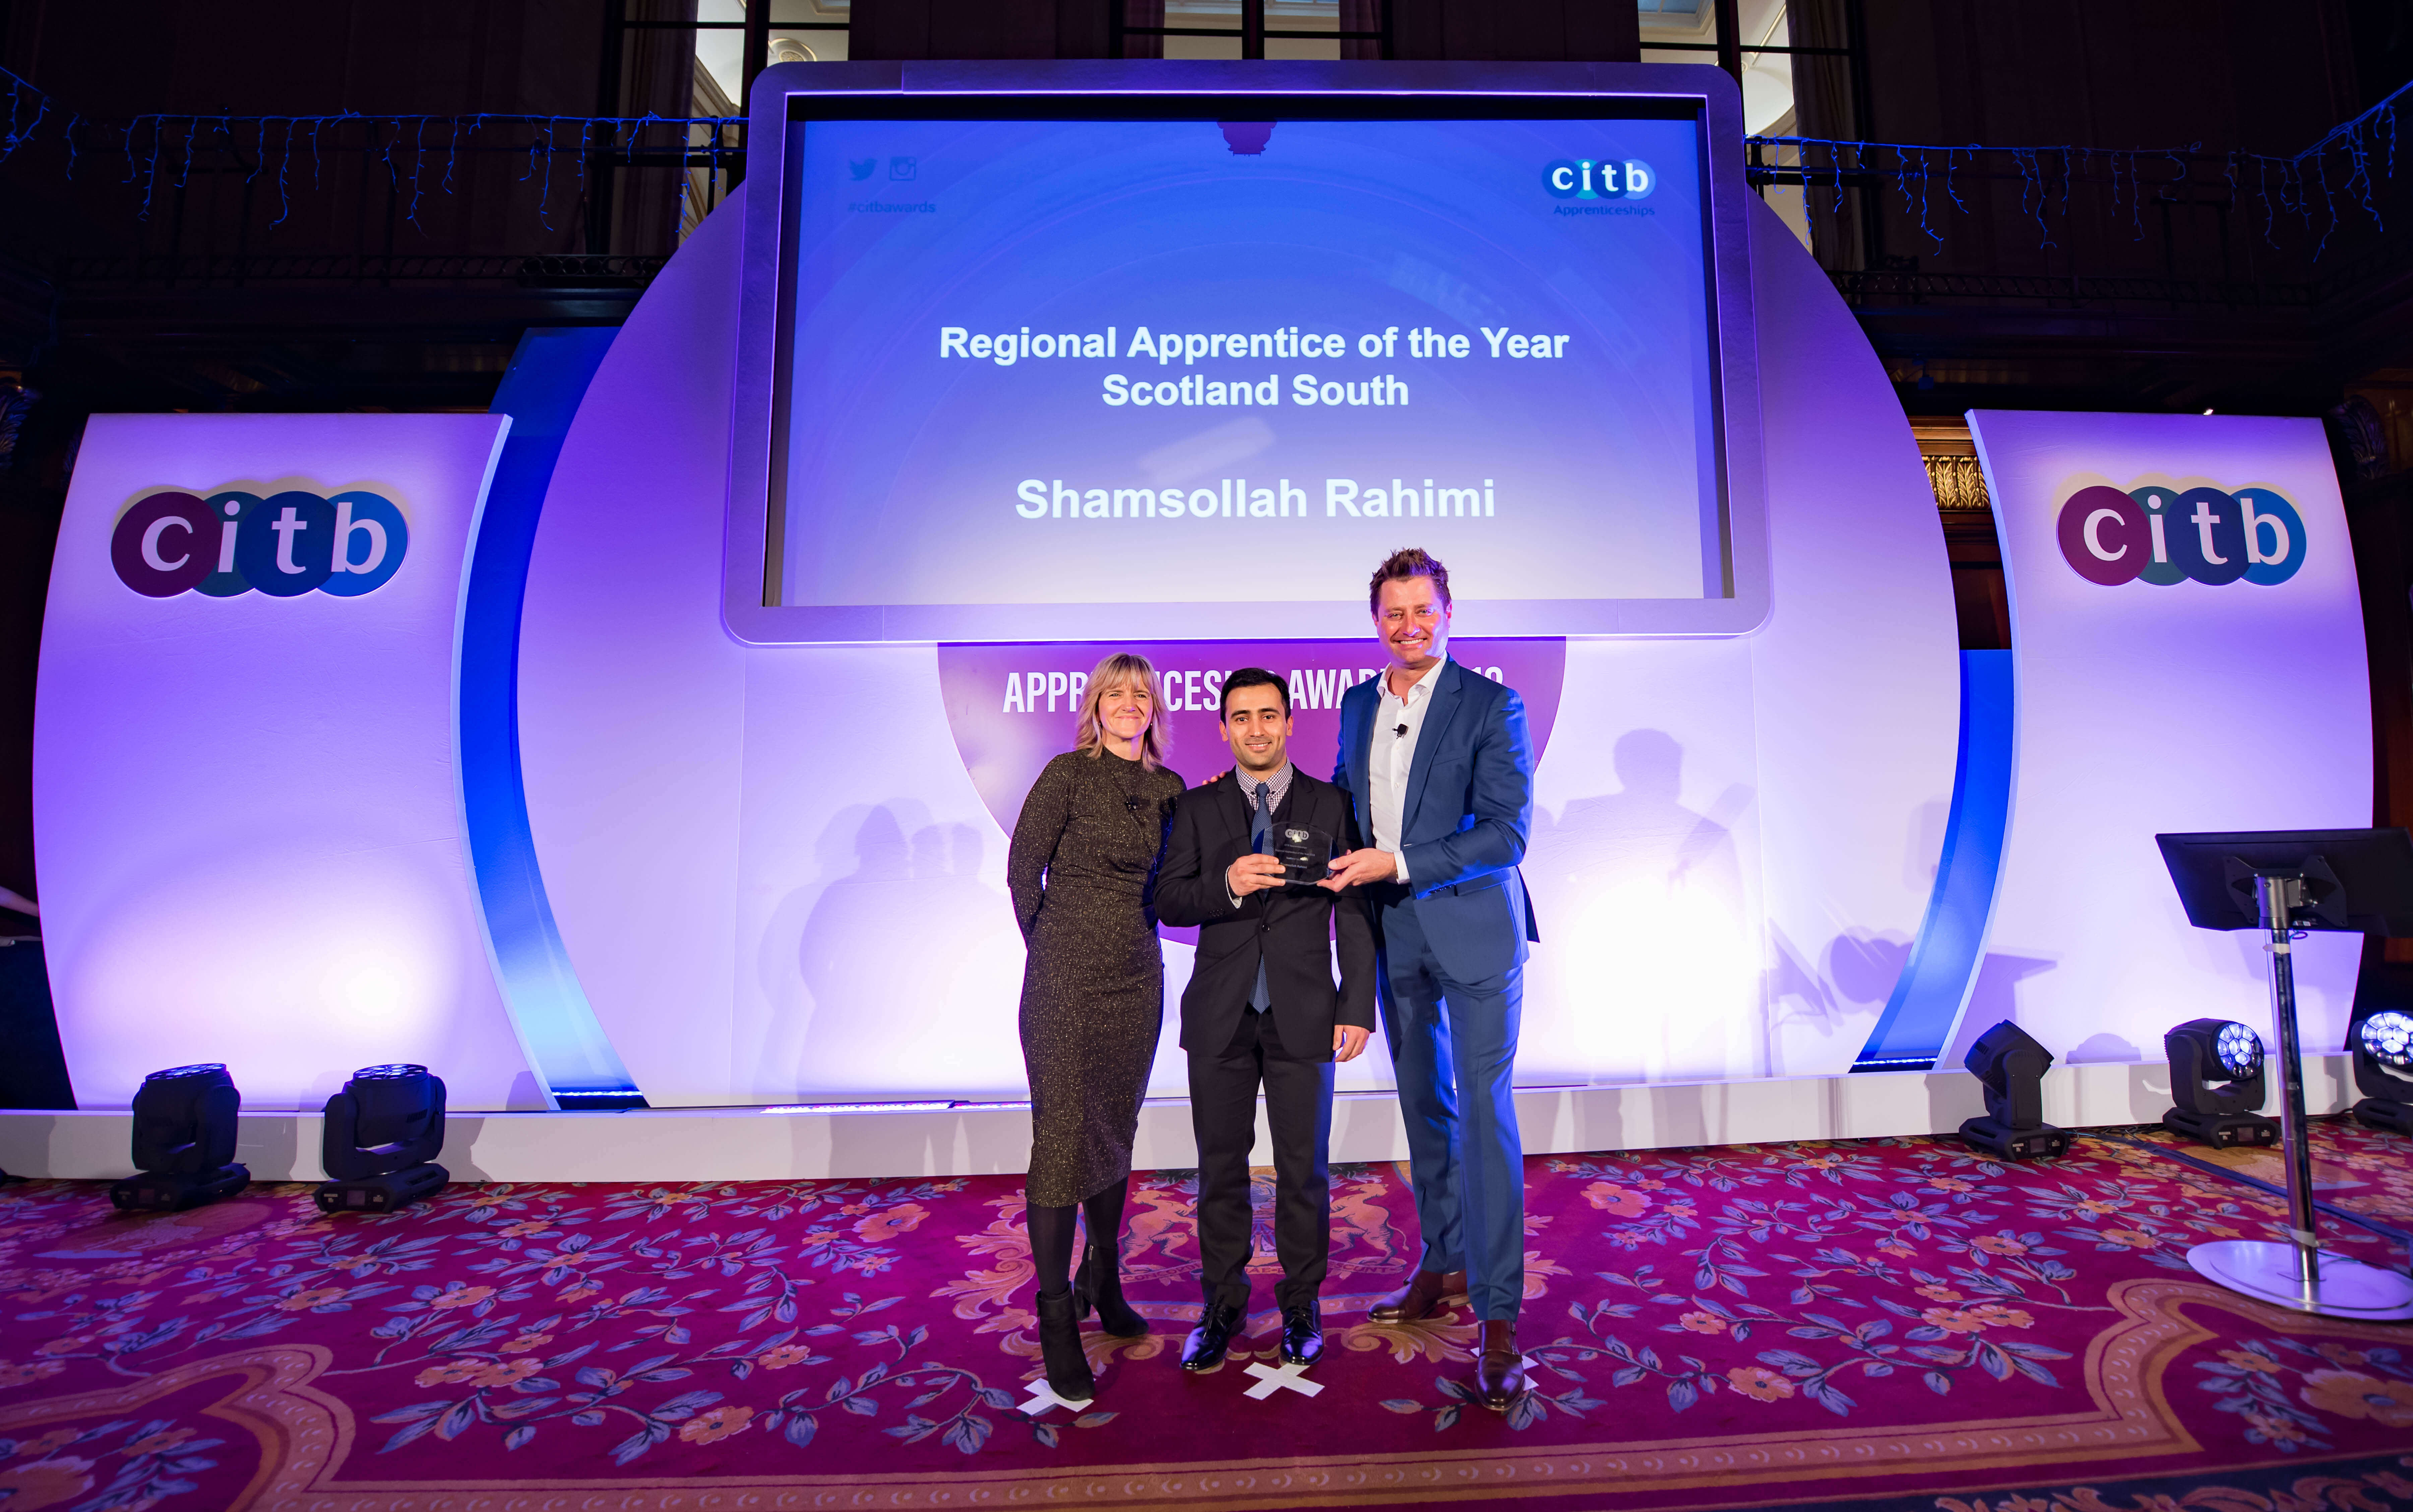 Apprentice makes it a double at CITB Awards image